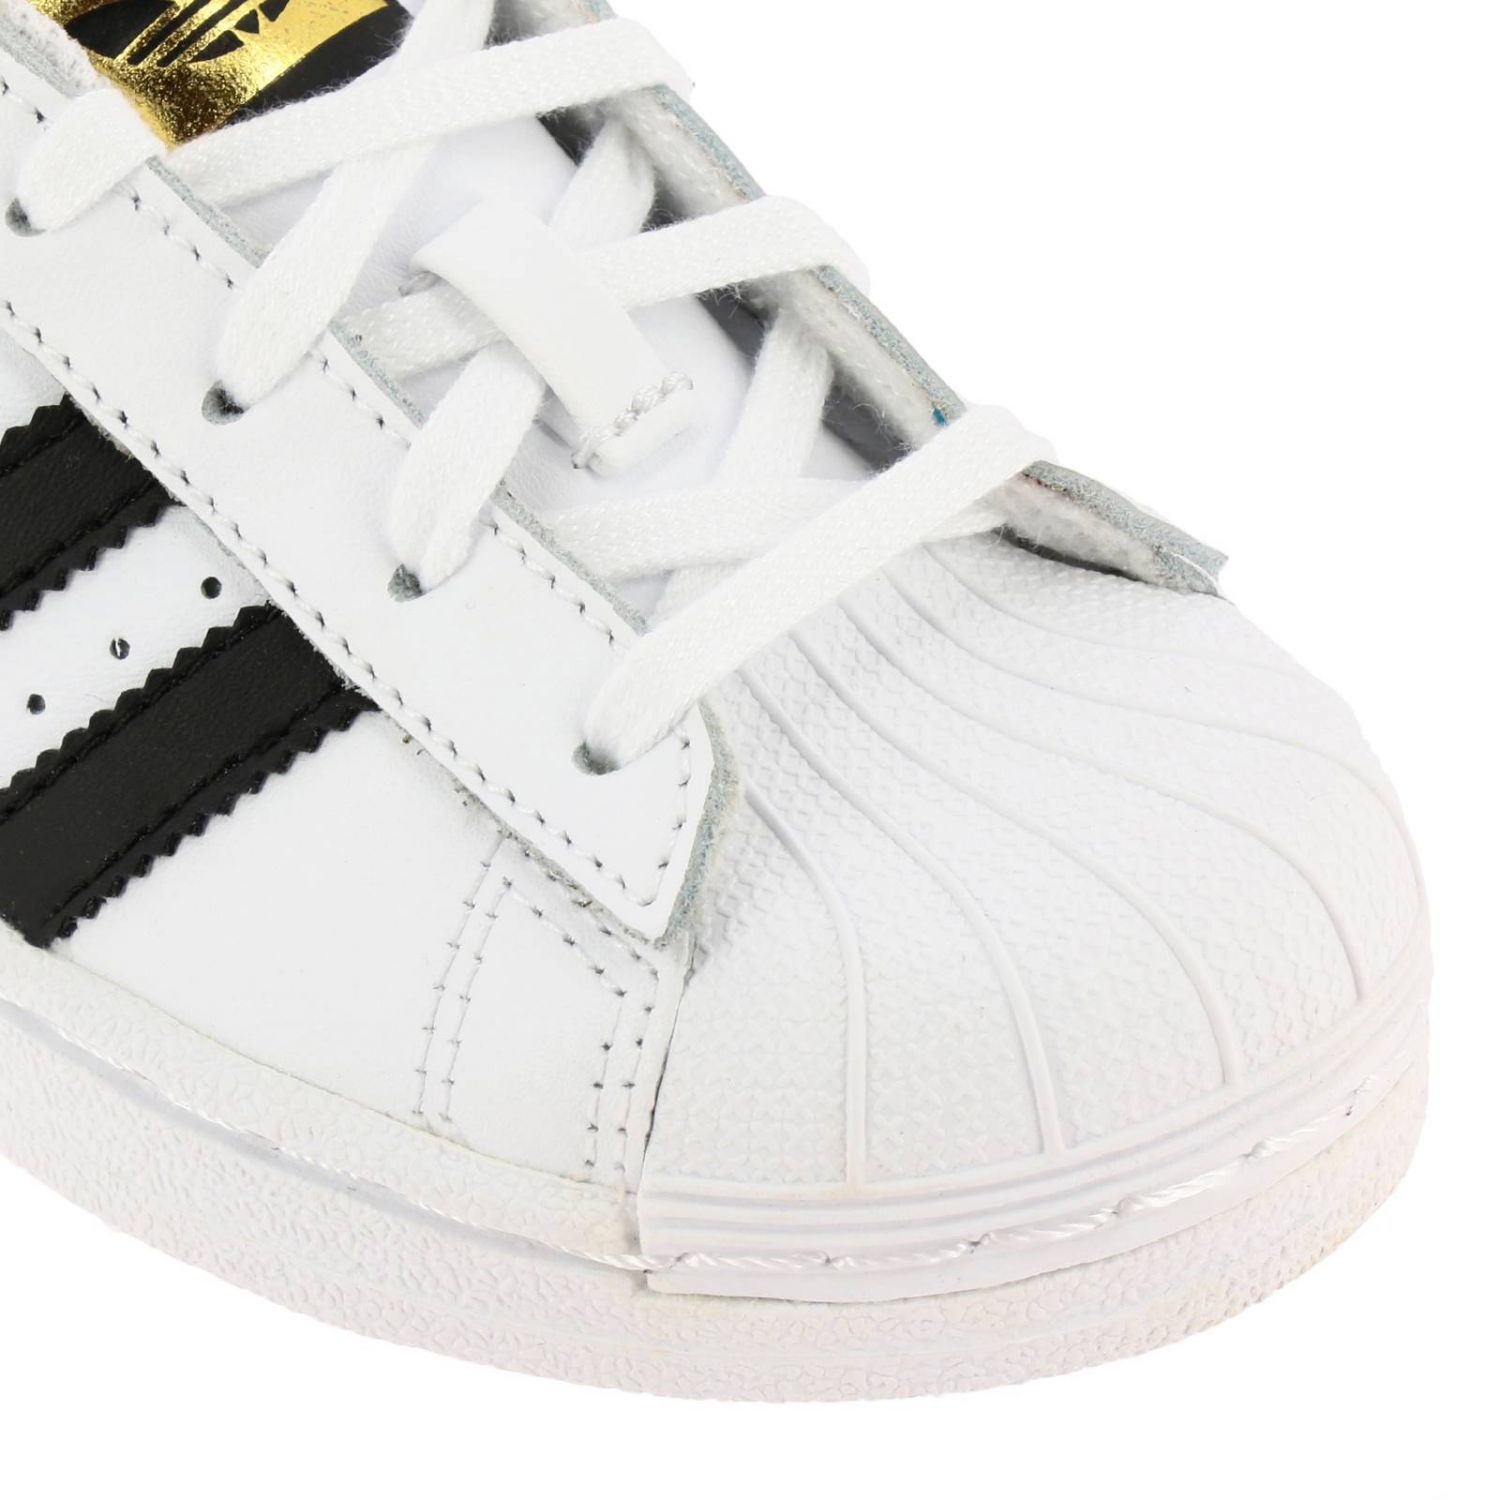 Shoes Adidas Originals: Adidas Originals Superstar Sneakers in leather with 3 contrasting stripes white 3